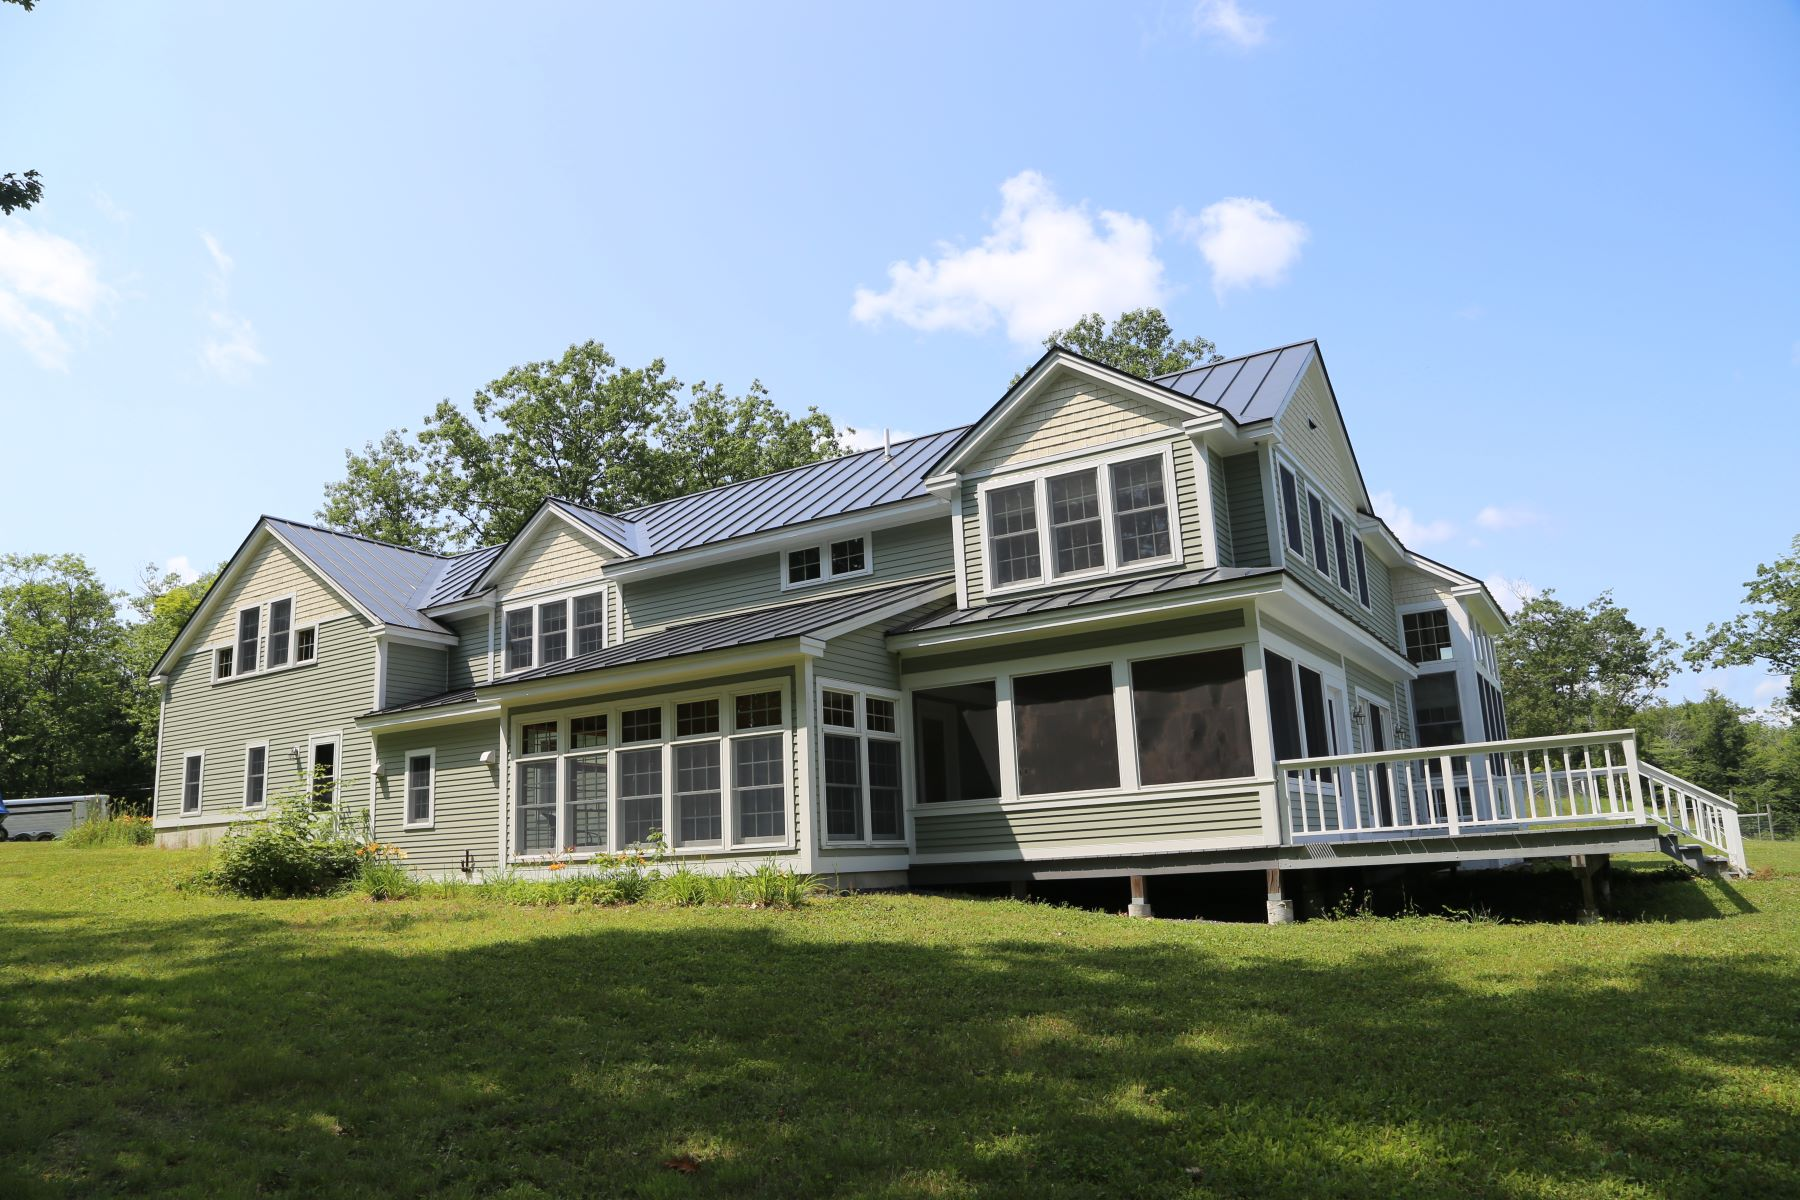 Single Family Homes for Sale at Lovely Farm Property 105 Oak Hill Rd Enfield, New Hampshire 03748 United States